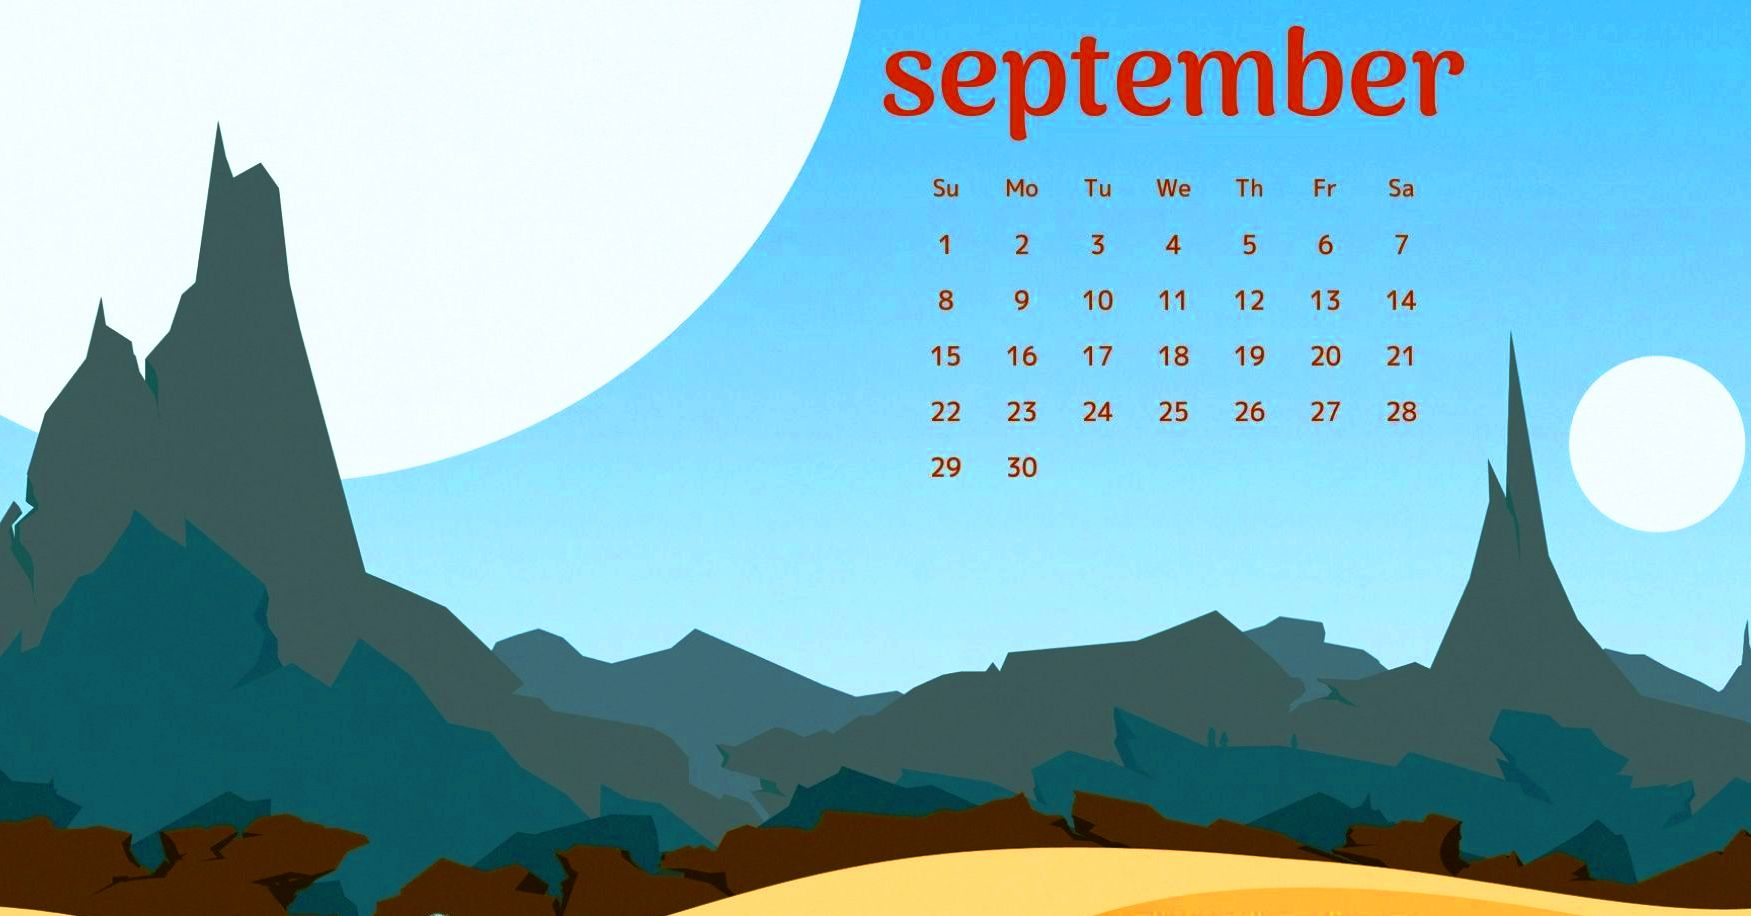 September Calendar 2019 Desktop